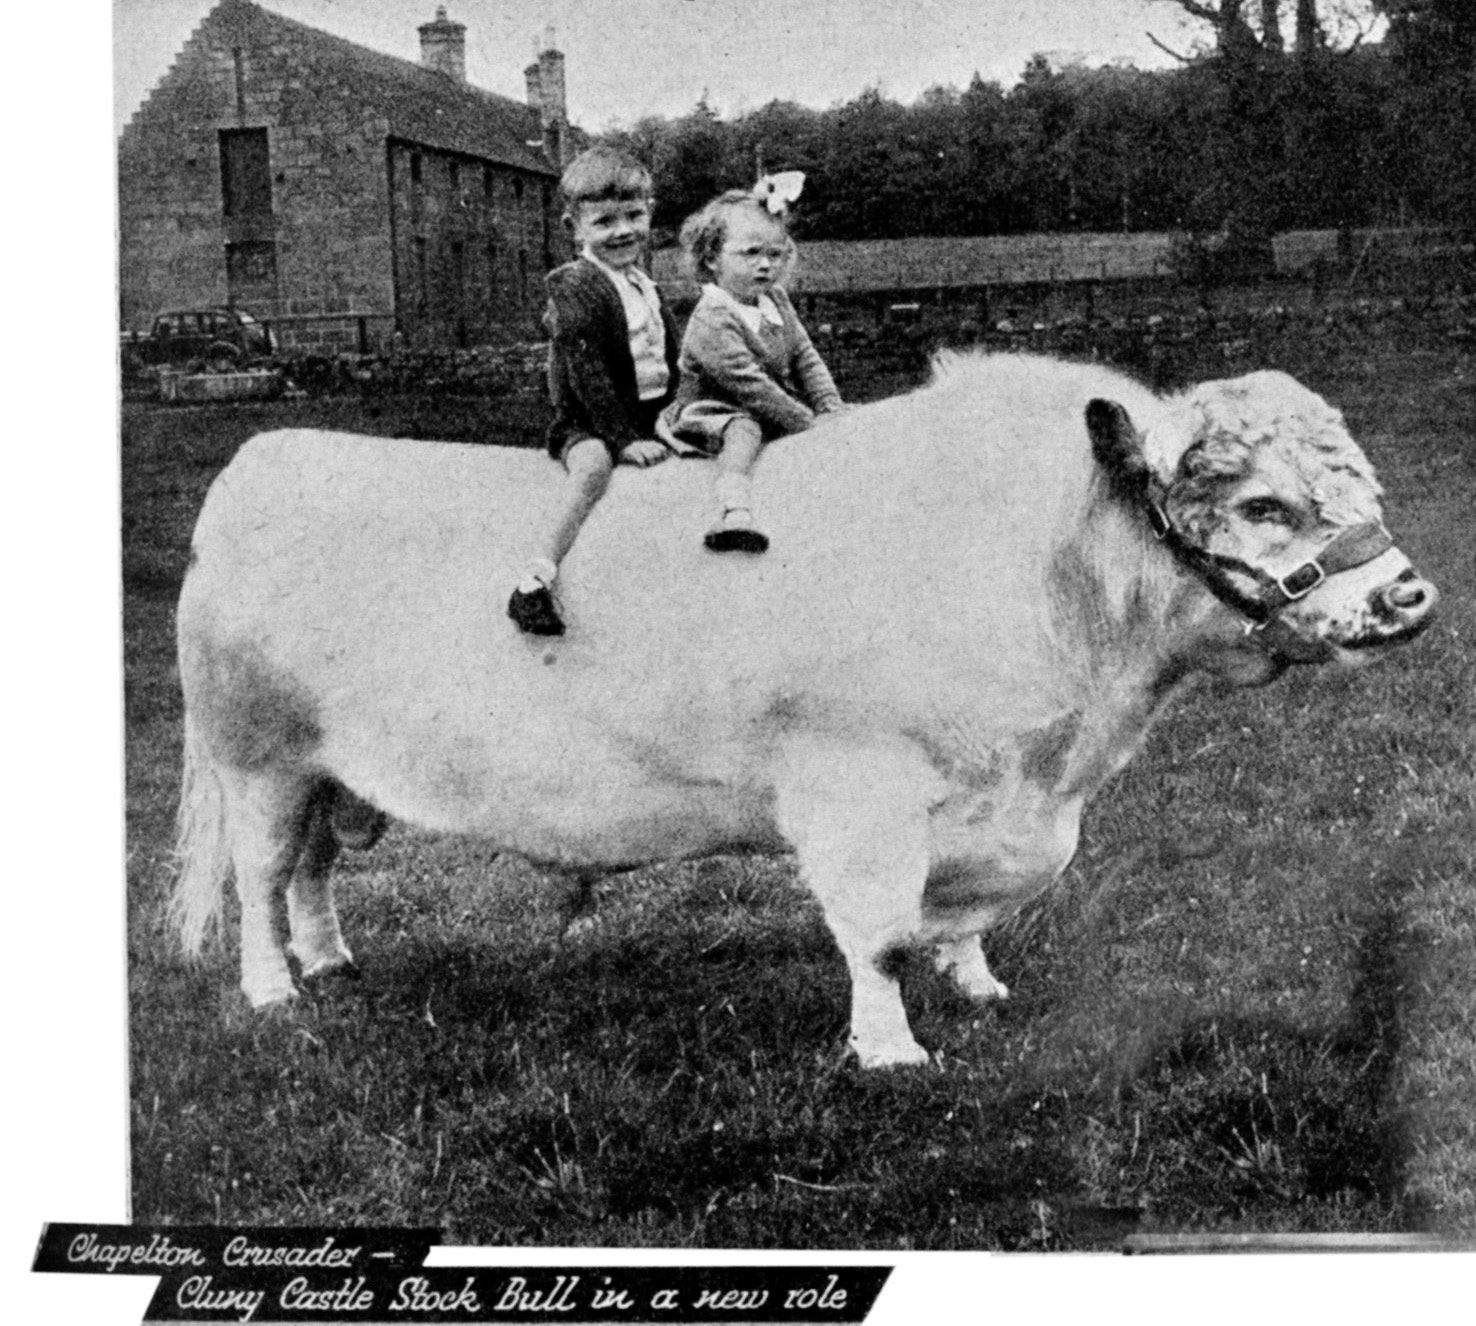 Chapelton Crusader -- the Cluny Castle stock bull in a new role in 1951